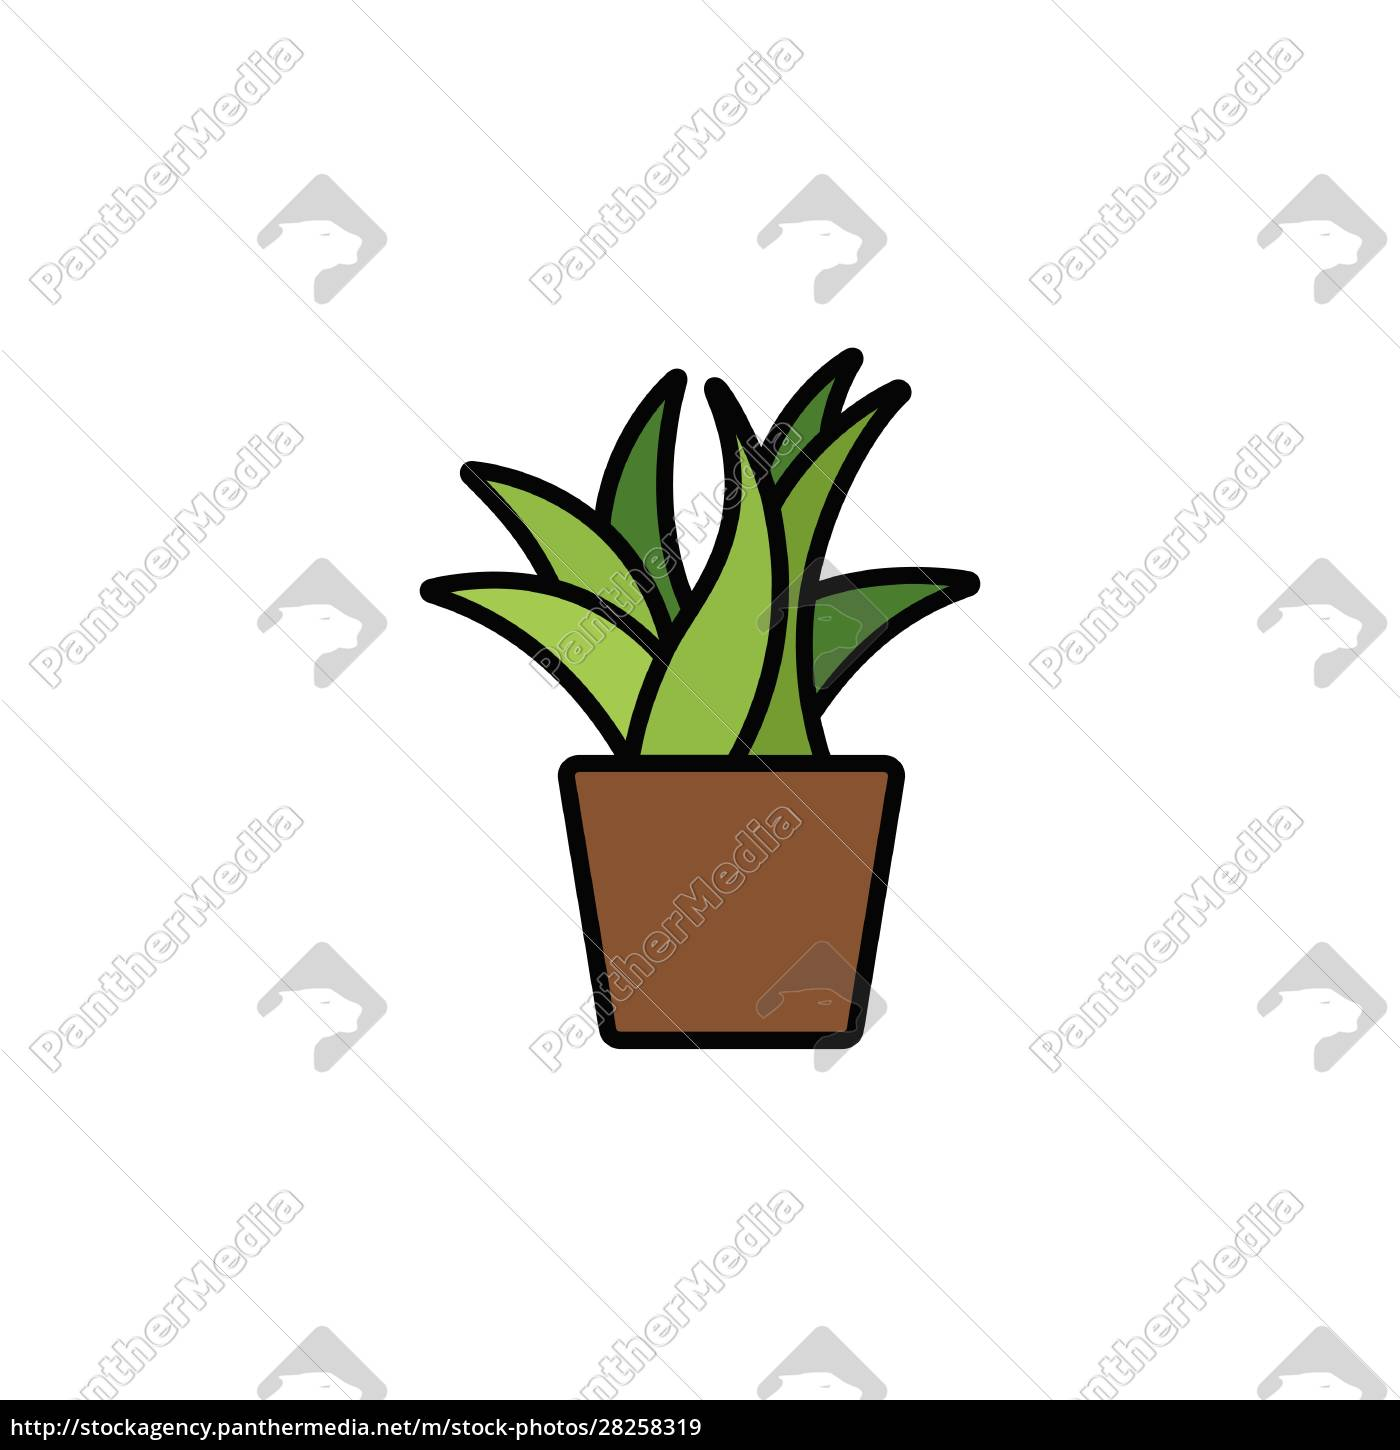 plant., filled, color, icon., nature, vector - 28258319